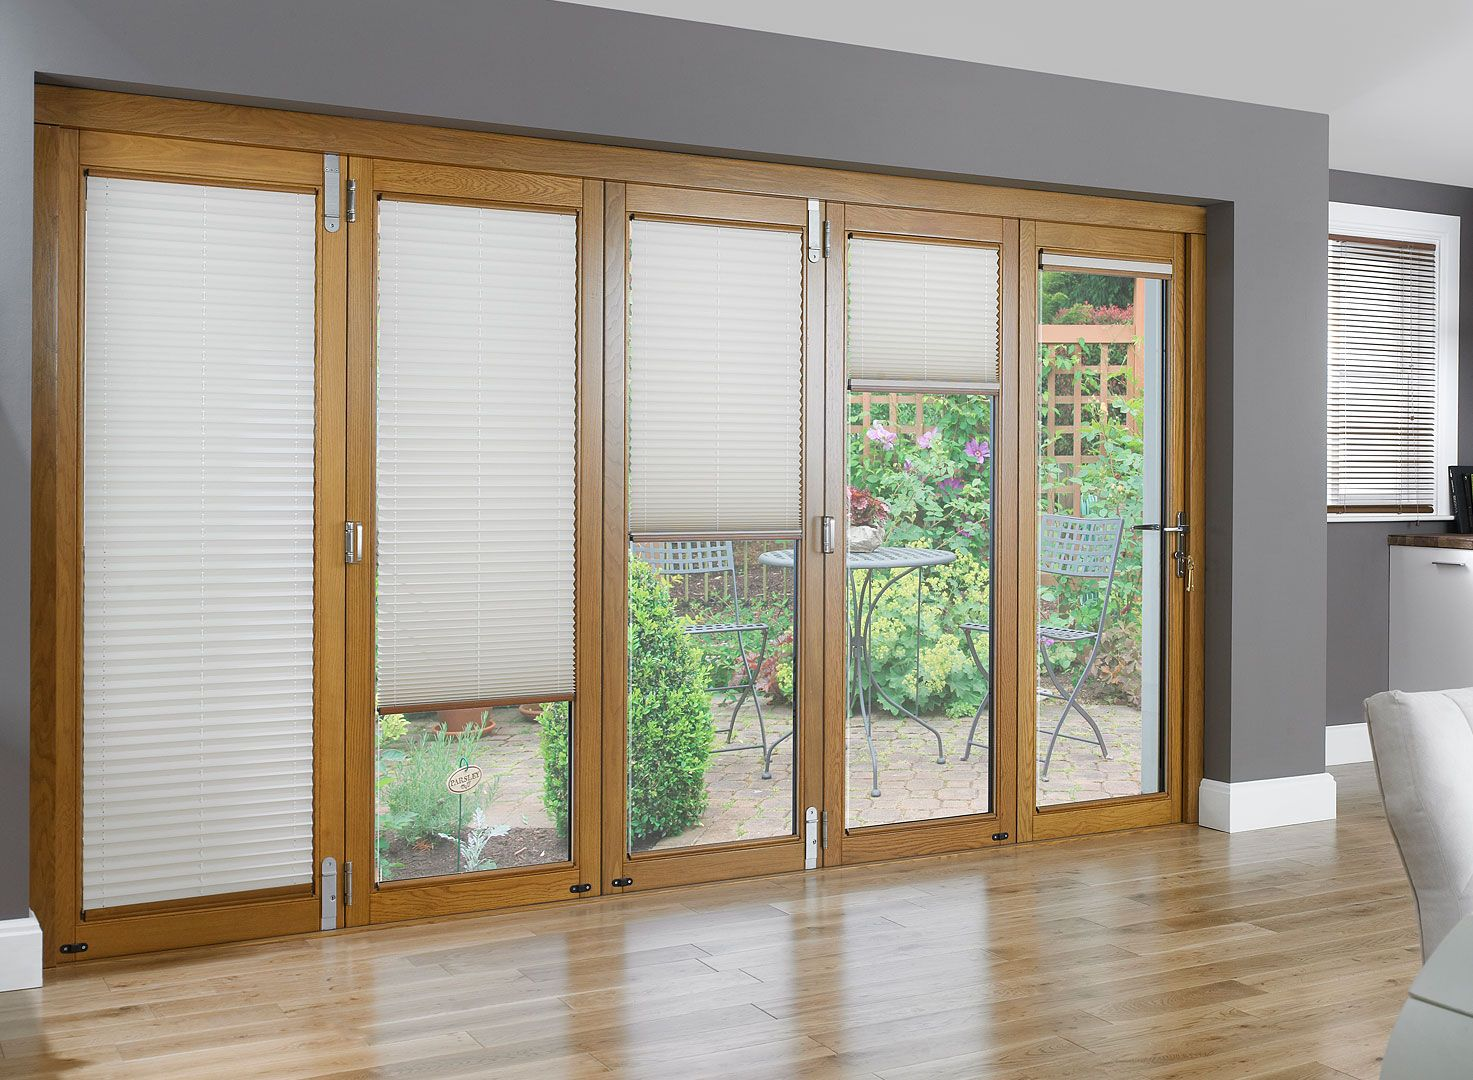 Blinds for sliding doors can give your room a different impact blinds for sliding doors can give your room a different impact description from uk eventelaan Gallery